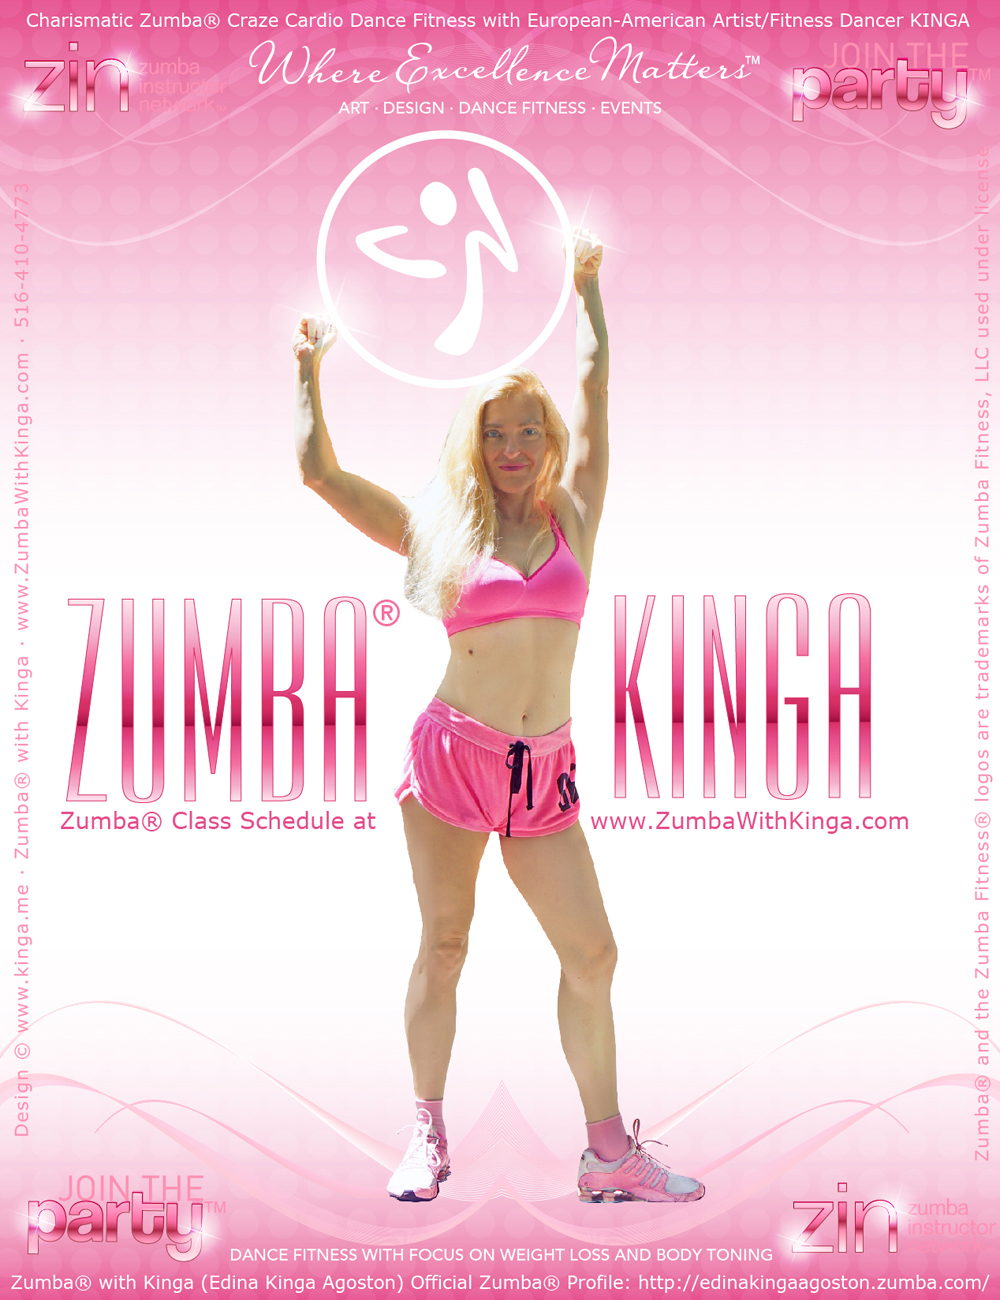 Hamptons Zumba Diva - European American Artist Zumba Dancer Edina Kinga Agoston